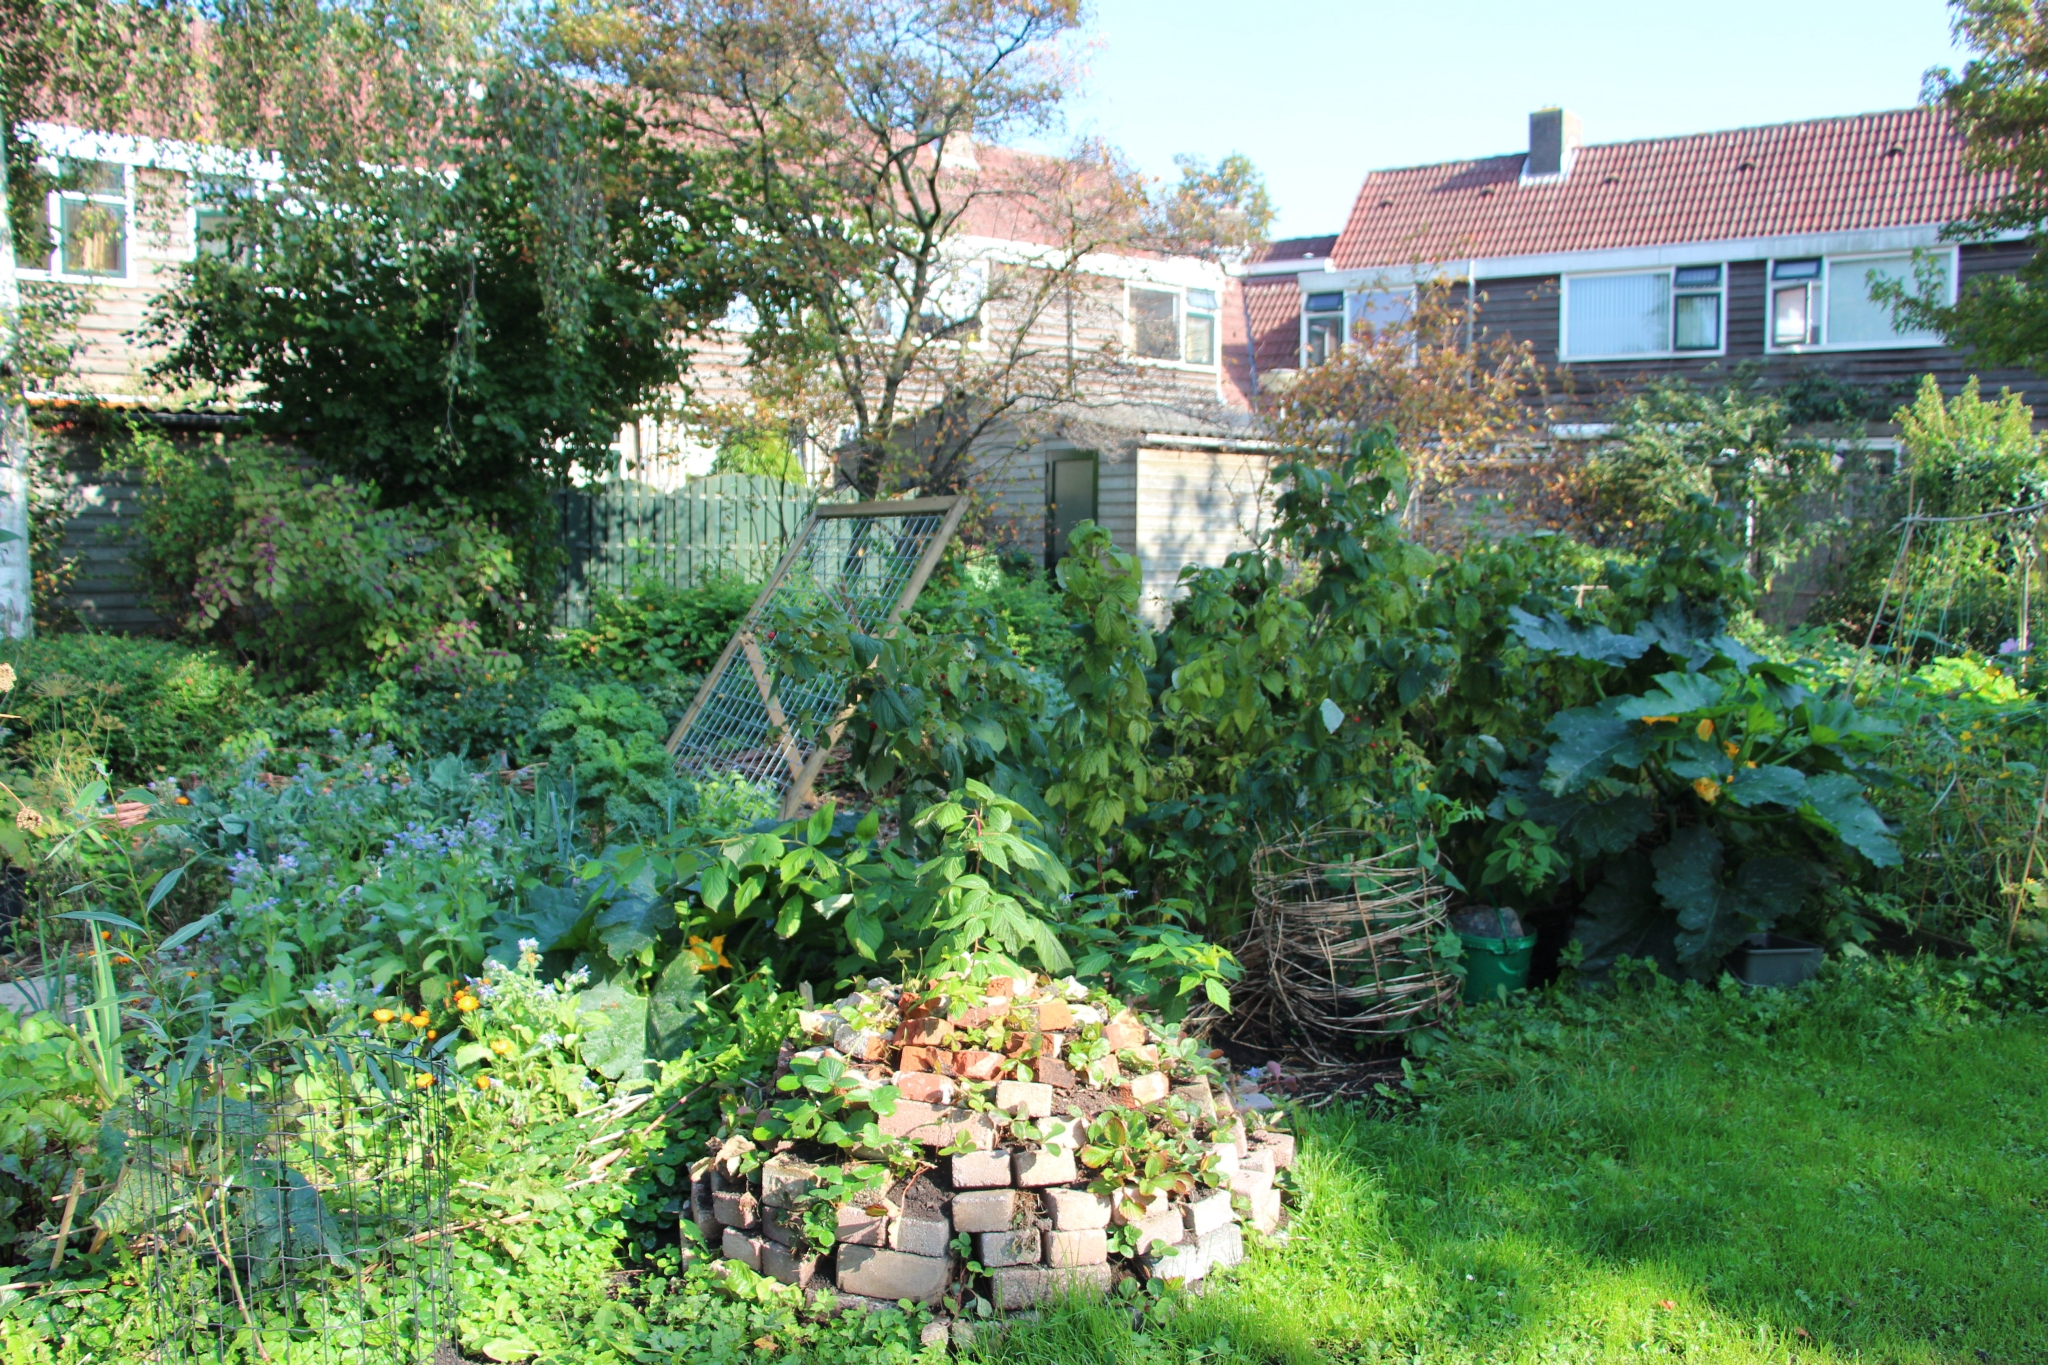 Permaculture Garden You - Garden Ftempo on Backyard Permaculture Design id=28046